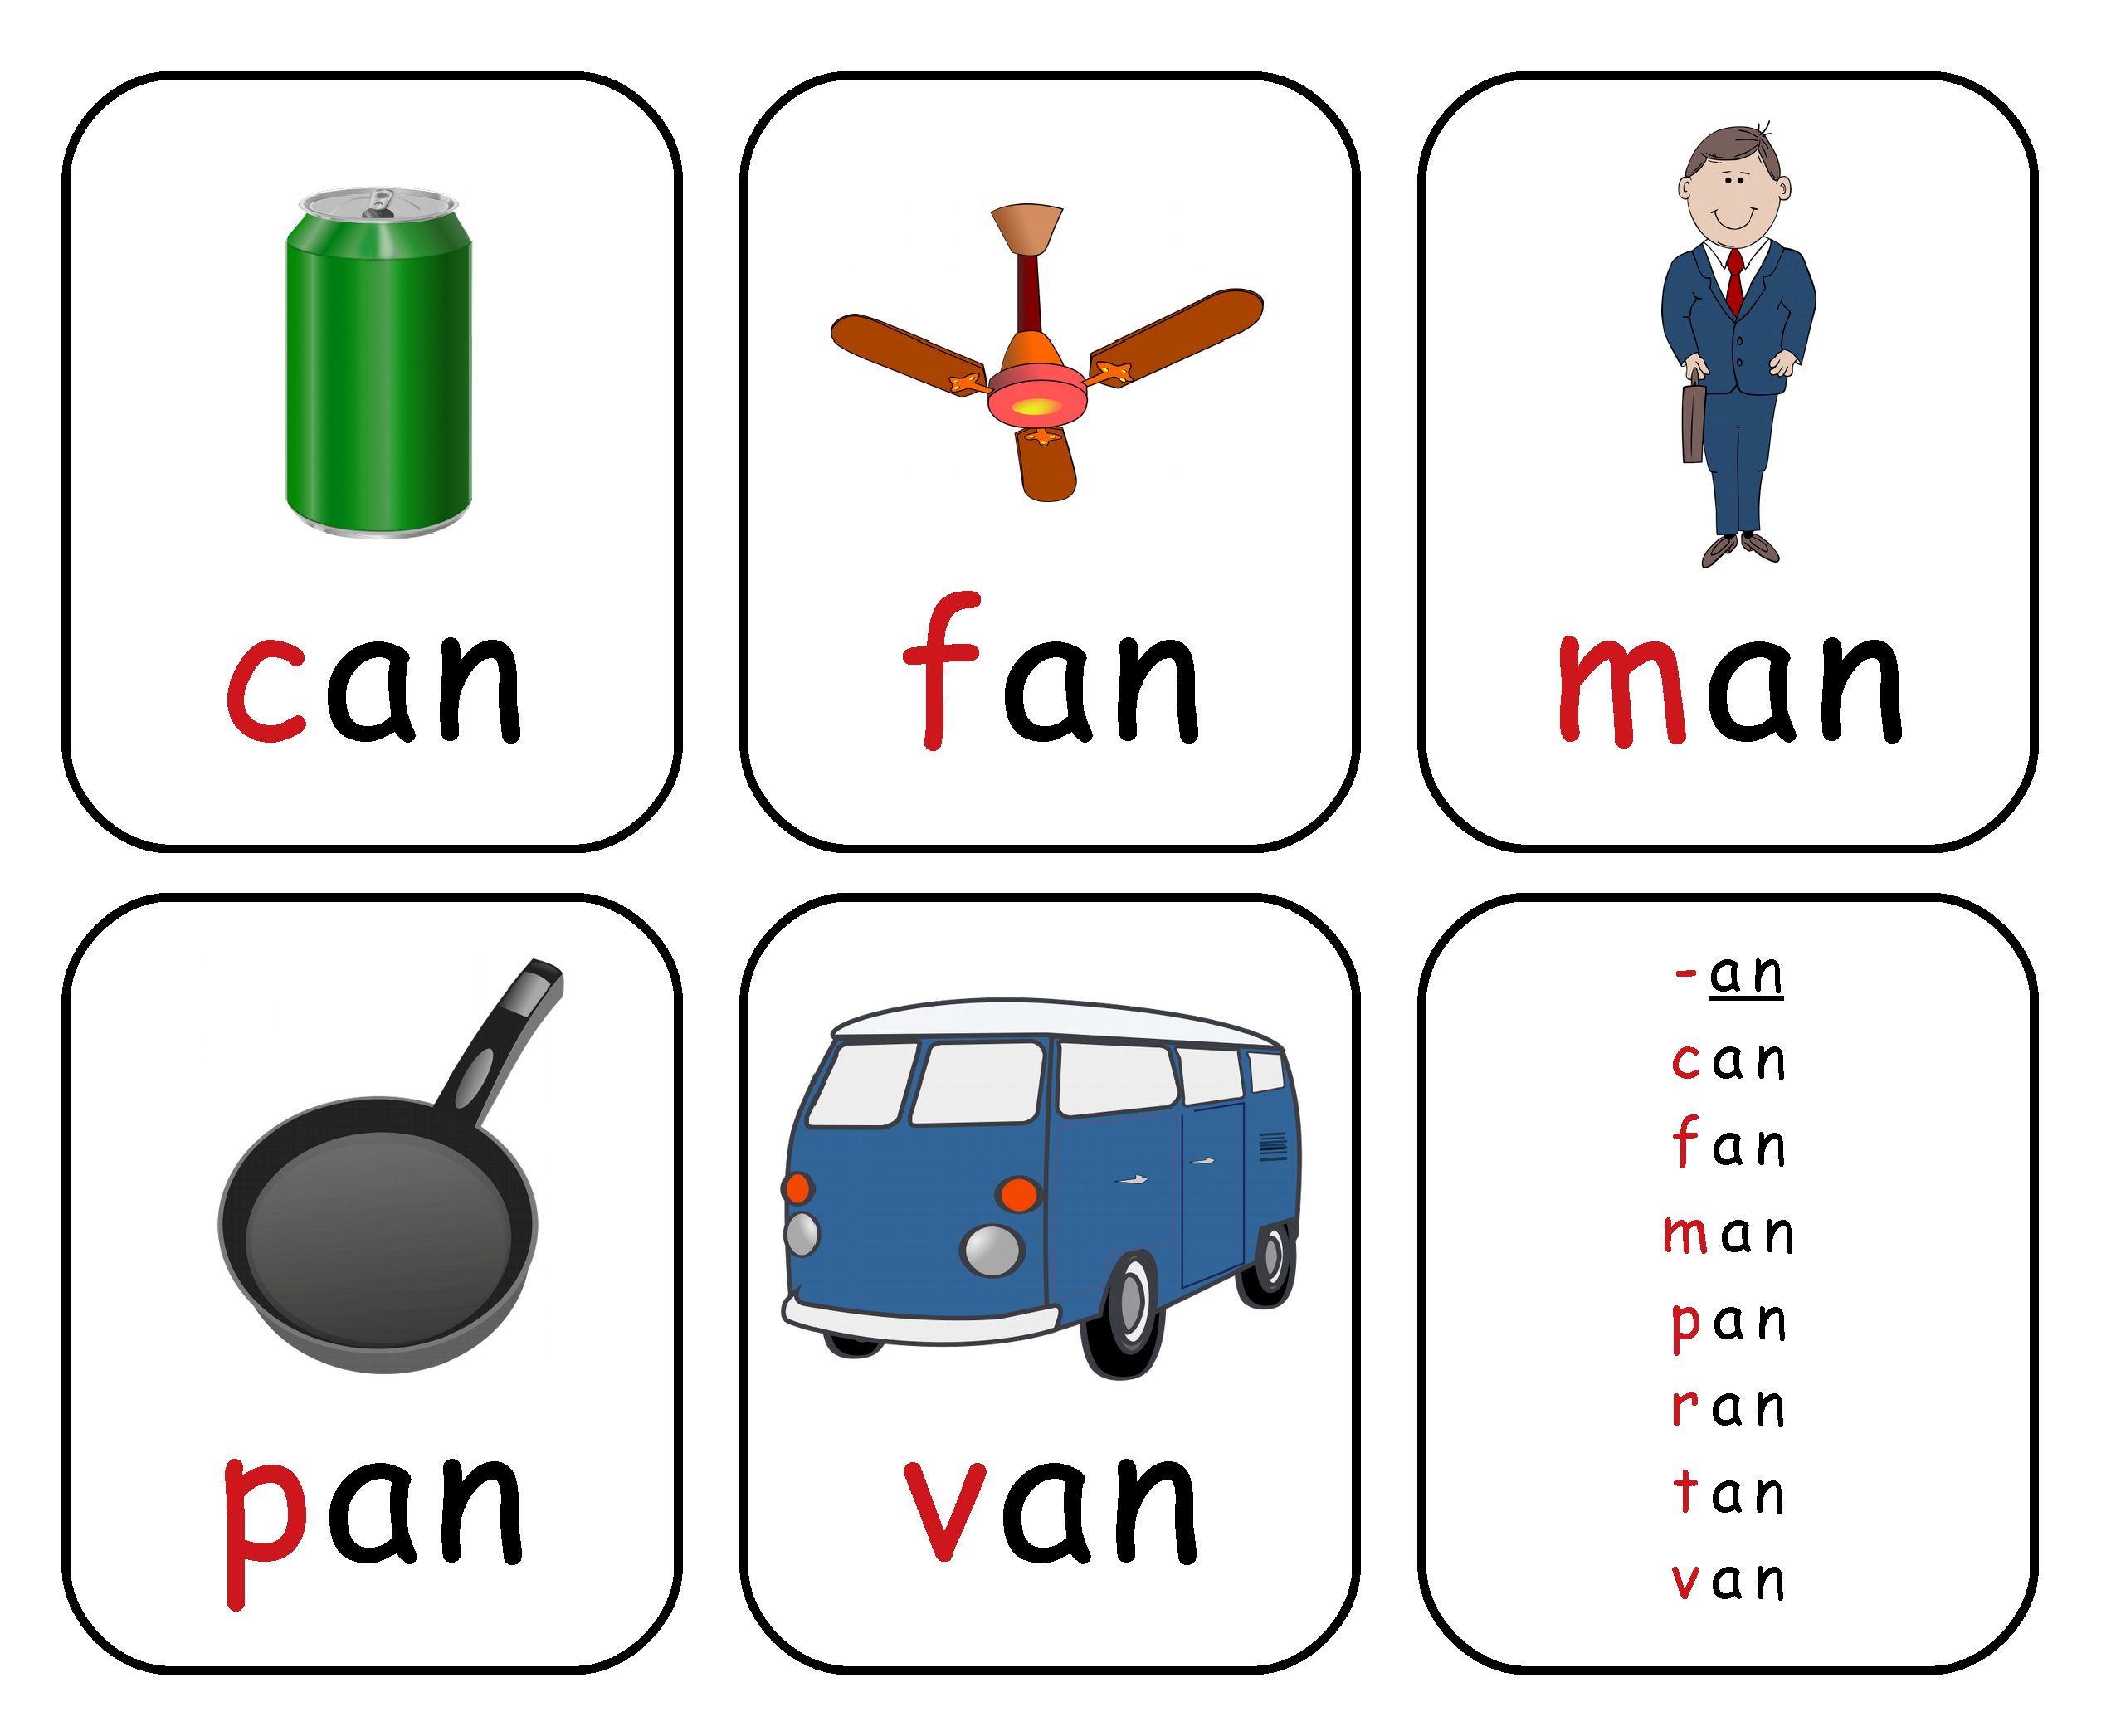 Free Printable Rhyming Words Flash Cards '-An'   Free Printable For - Free Printable Rhyming Words Flash Cards